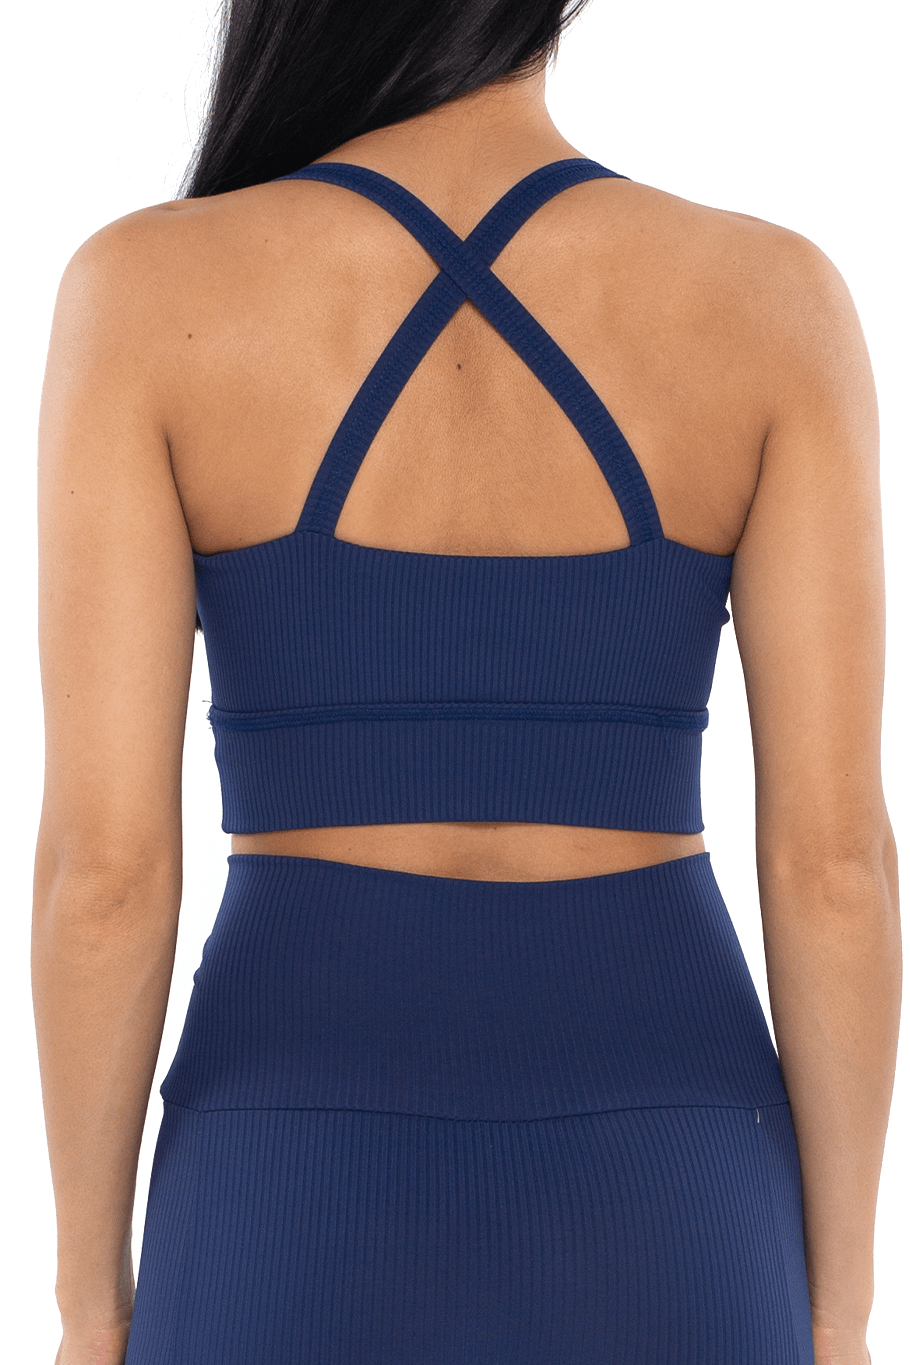 Shore Movement Sports Bra - Navy Rib - Shore